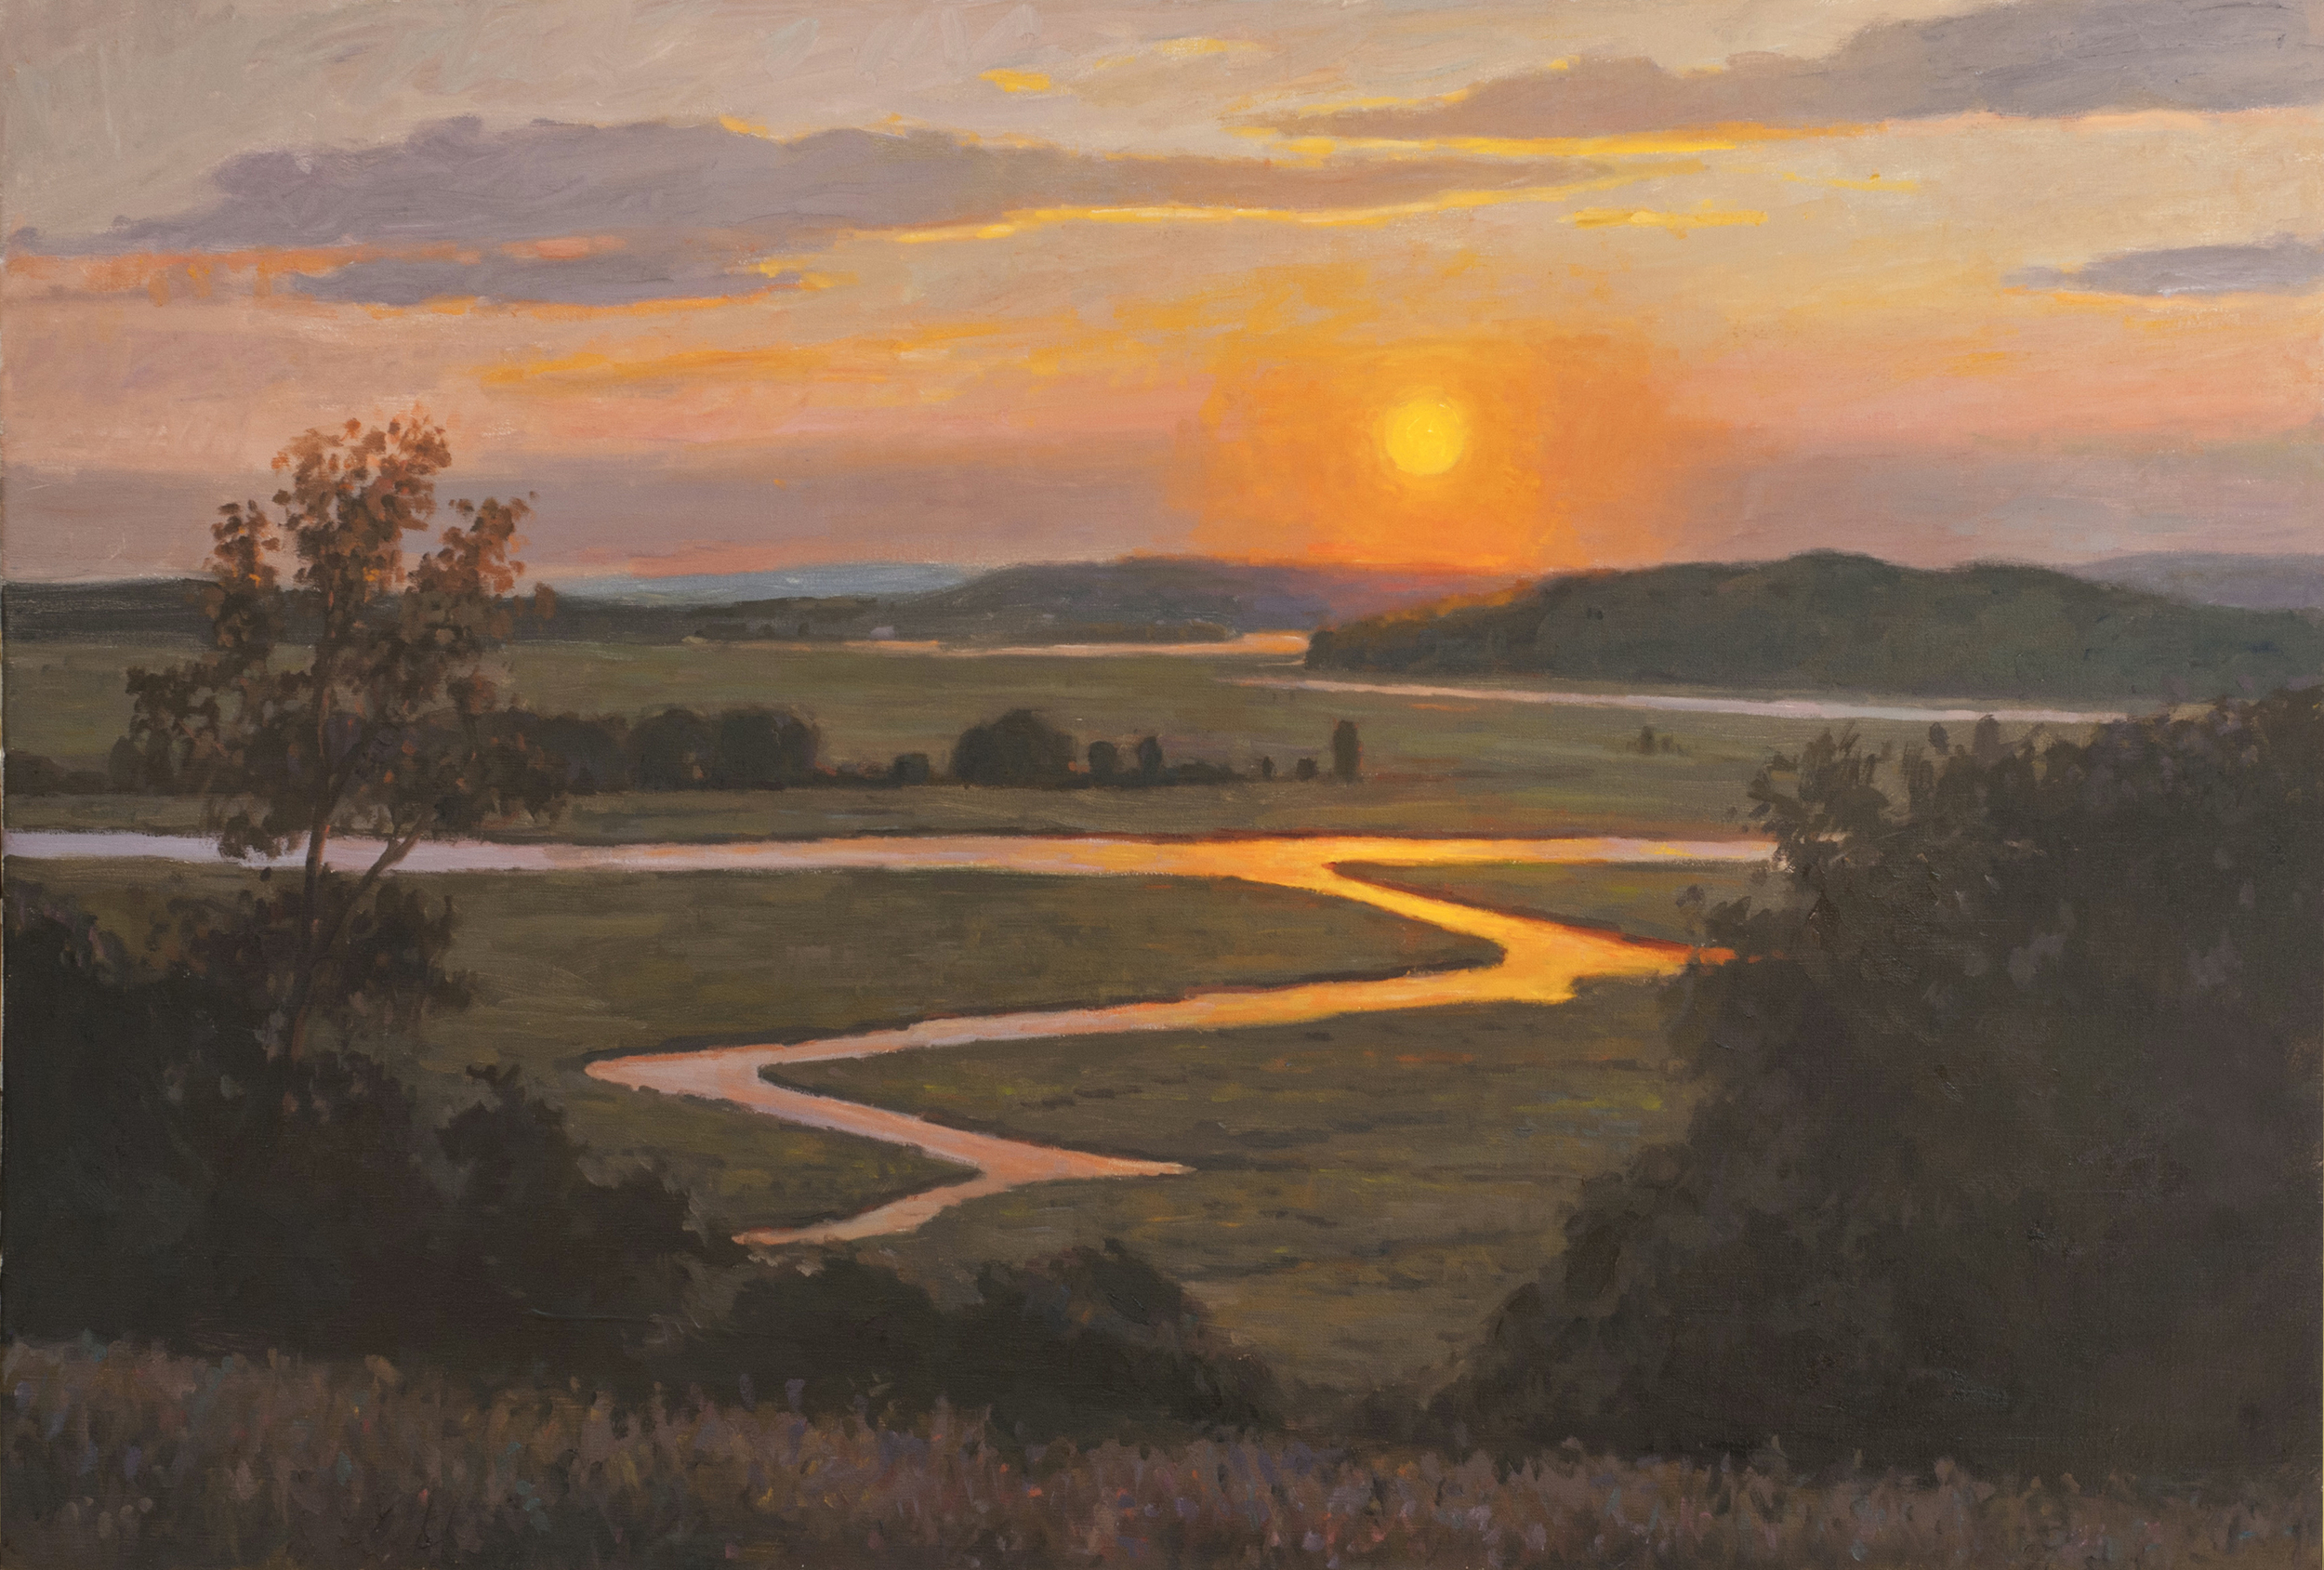 Sunset Marsh View, Oil on linen, 24 x 36 inches. [sold]